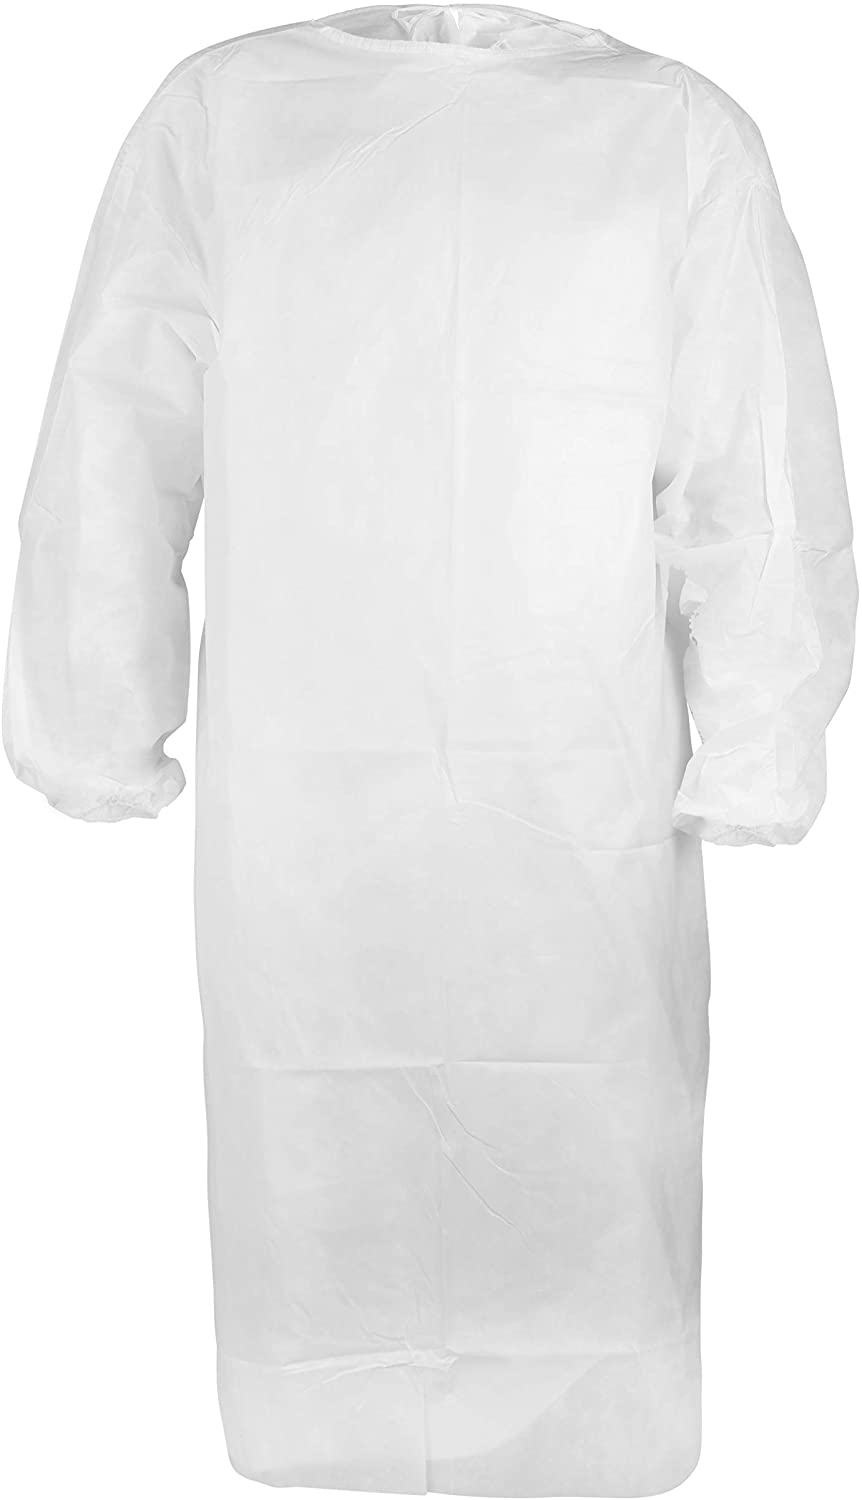 Coverallcare Medical Isolation Gown, Disposable PPE, Non-Woven, Water Resistant with Elastic Cuff, 40 GSM 10/20/30/40/50/100 Piece (10)